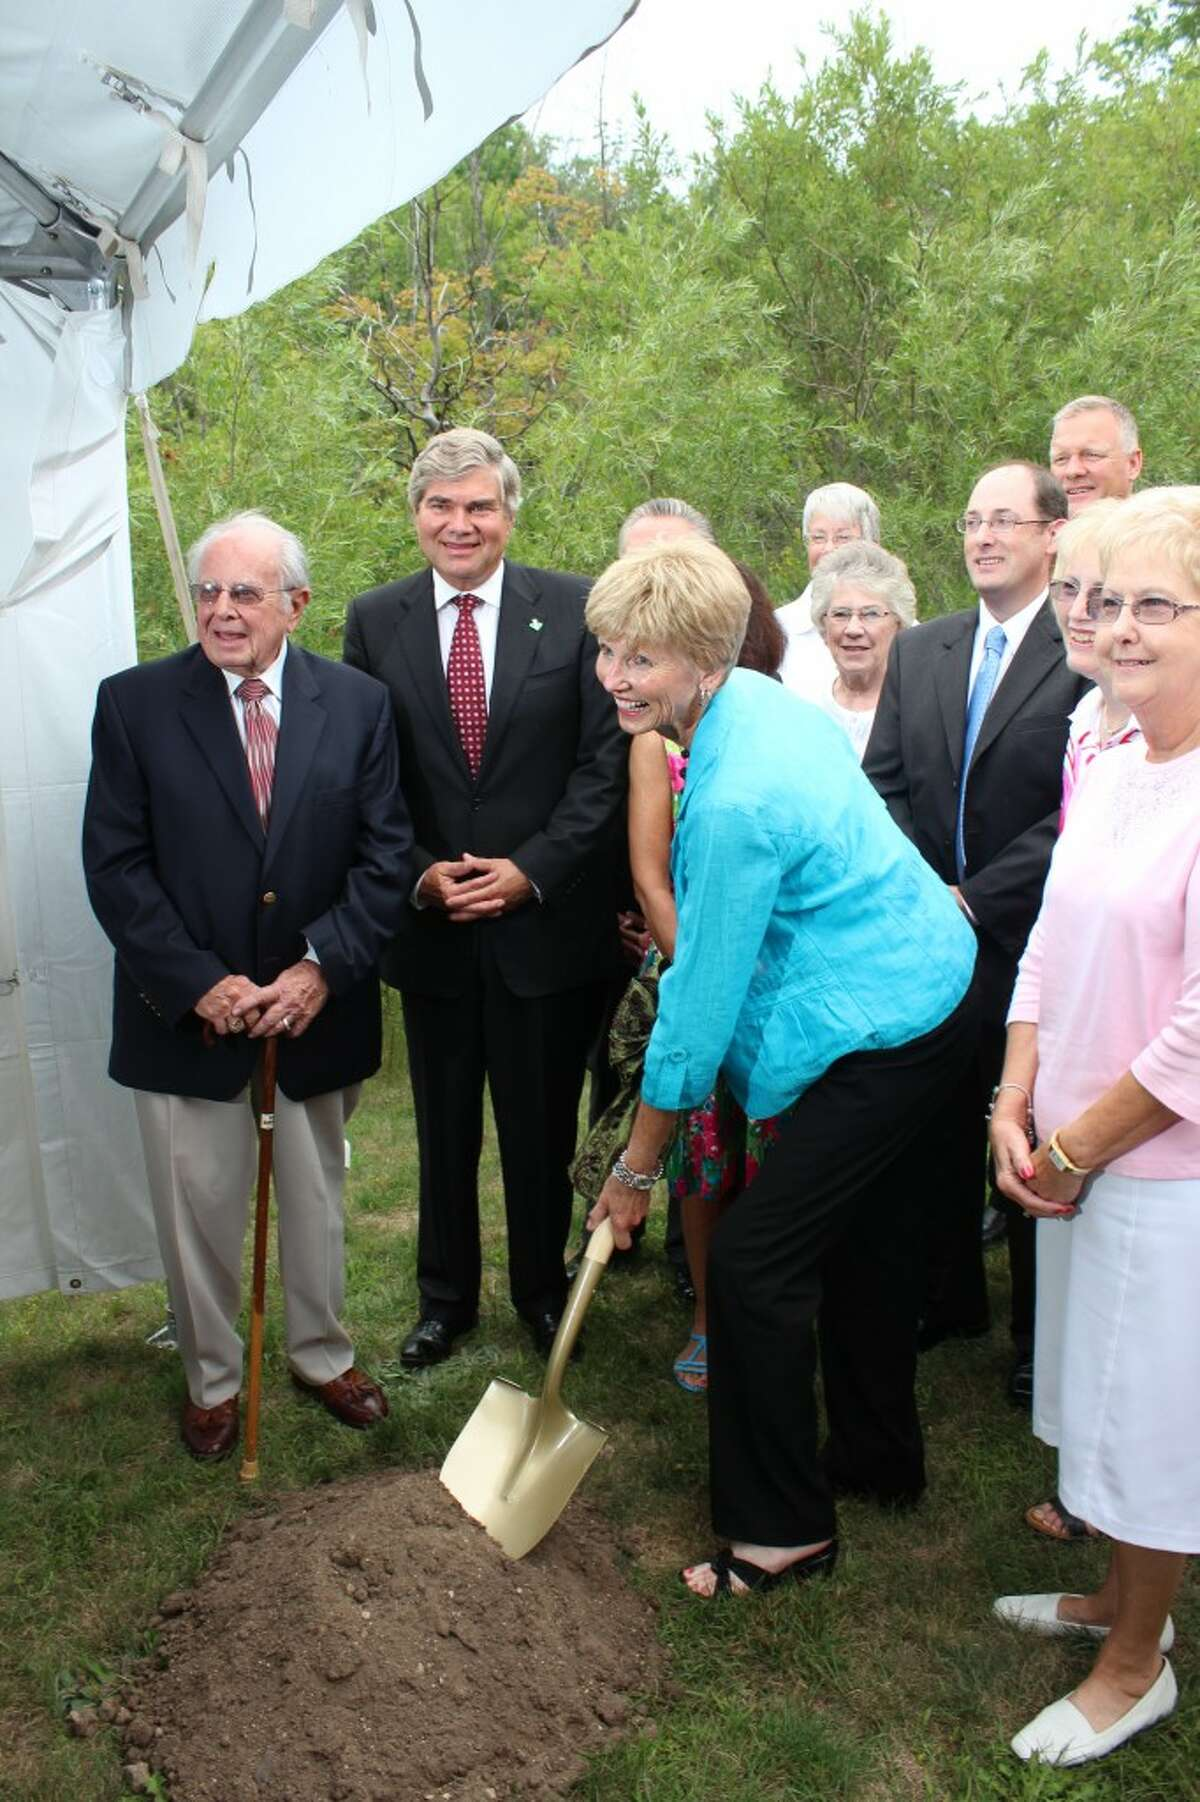 GROUND BREAKING: Susan Wheatlake (center) breaks ground for the $8.9 million Susan P. Wheatlake Regional Cancer Center. The facility is scheduled to open in summer 2013.